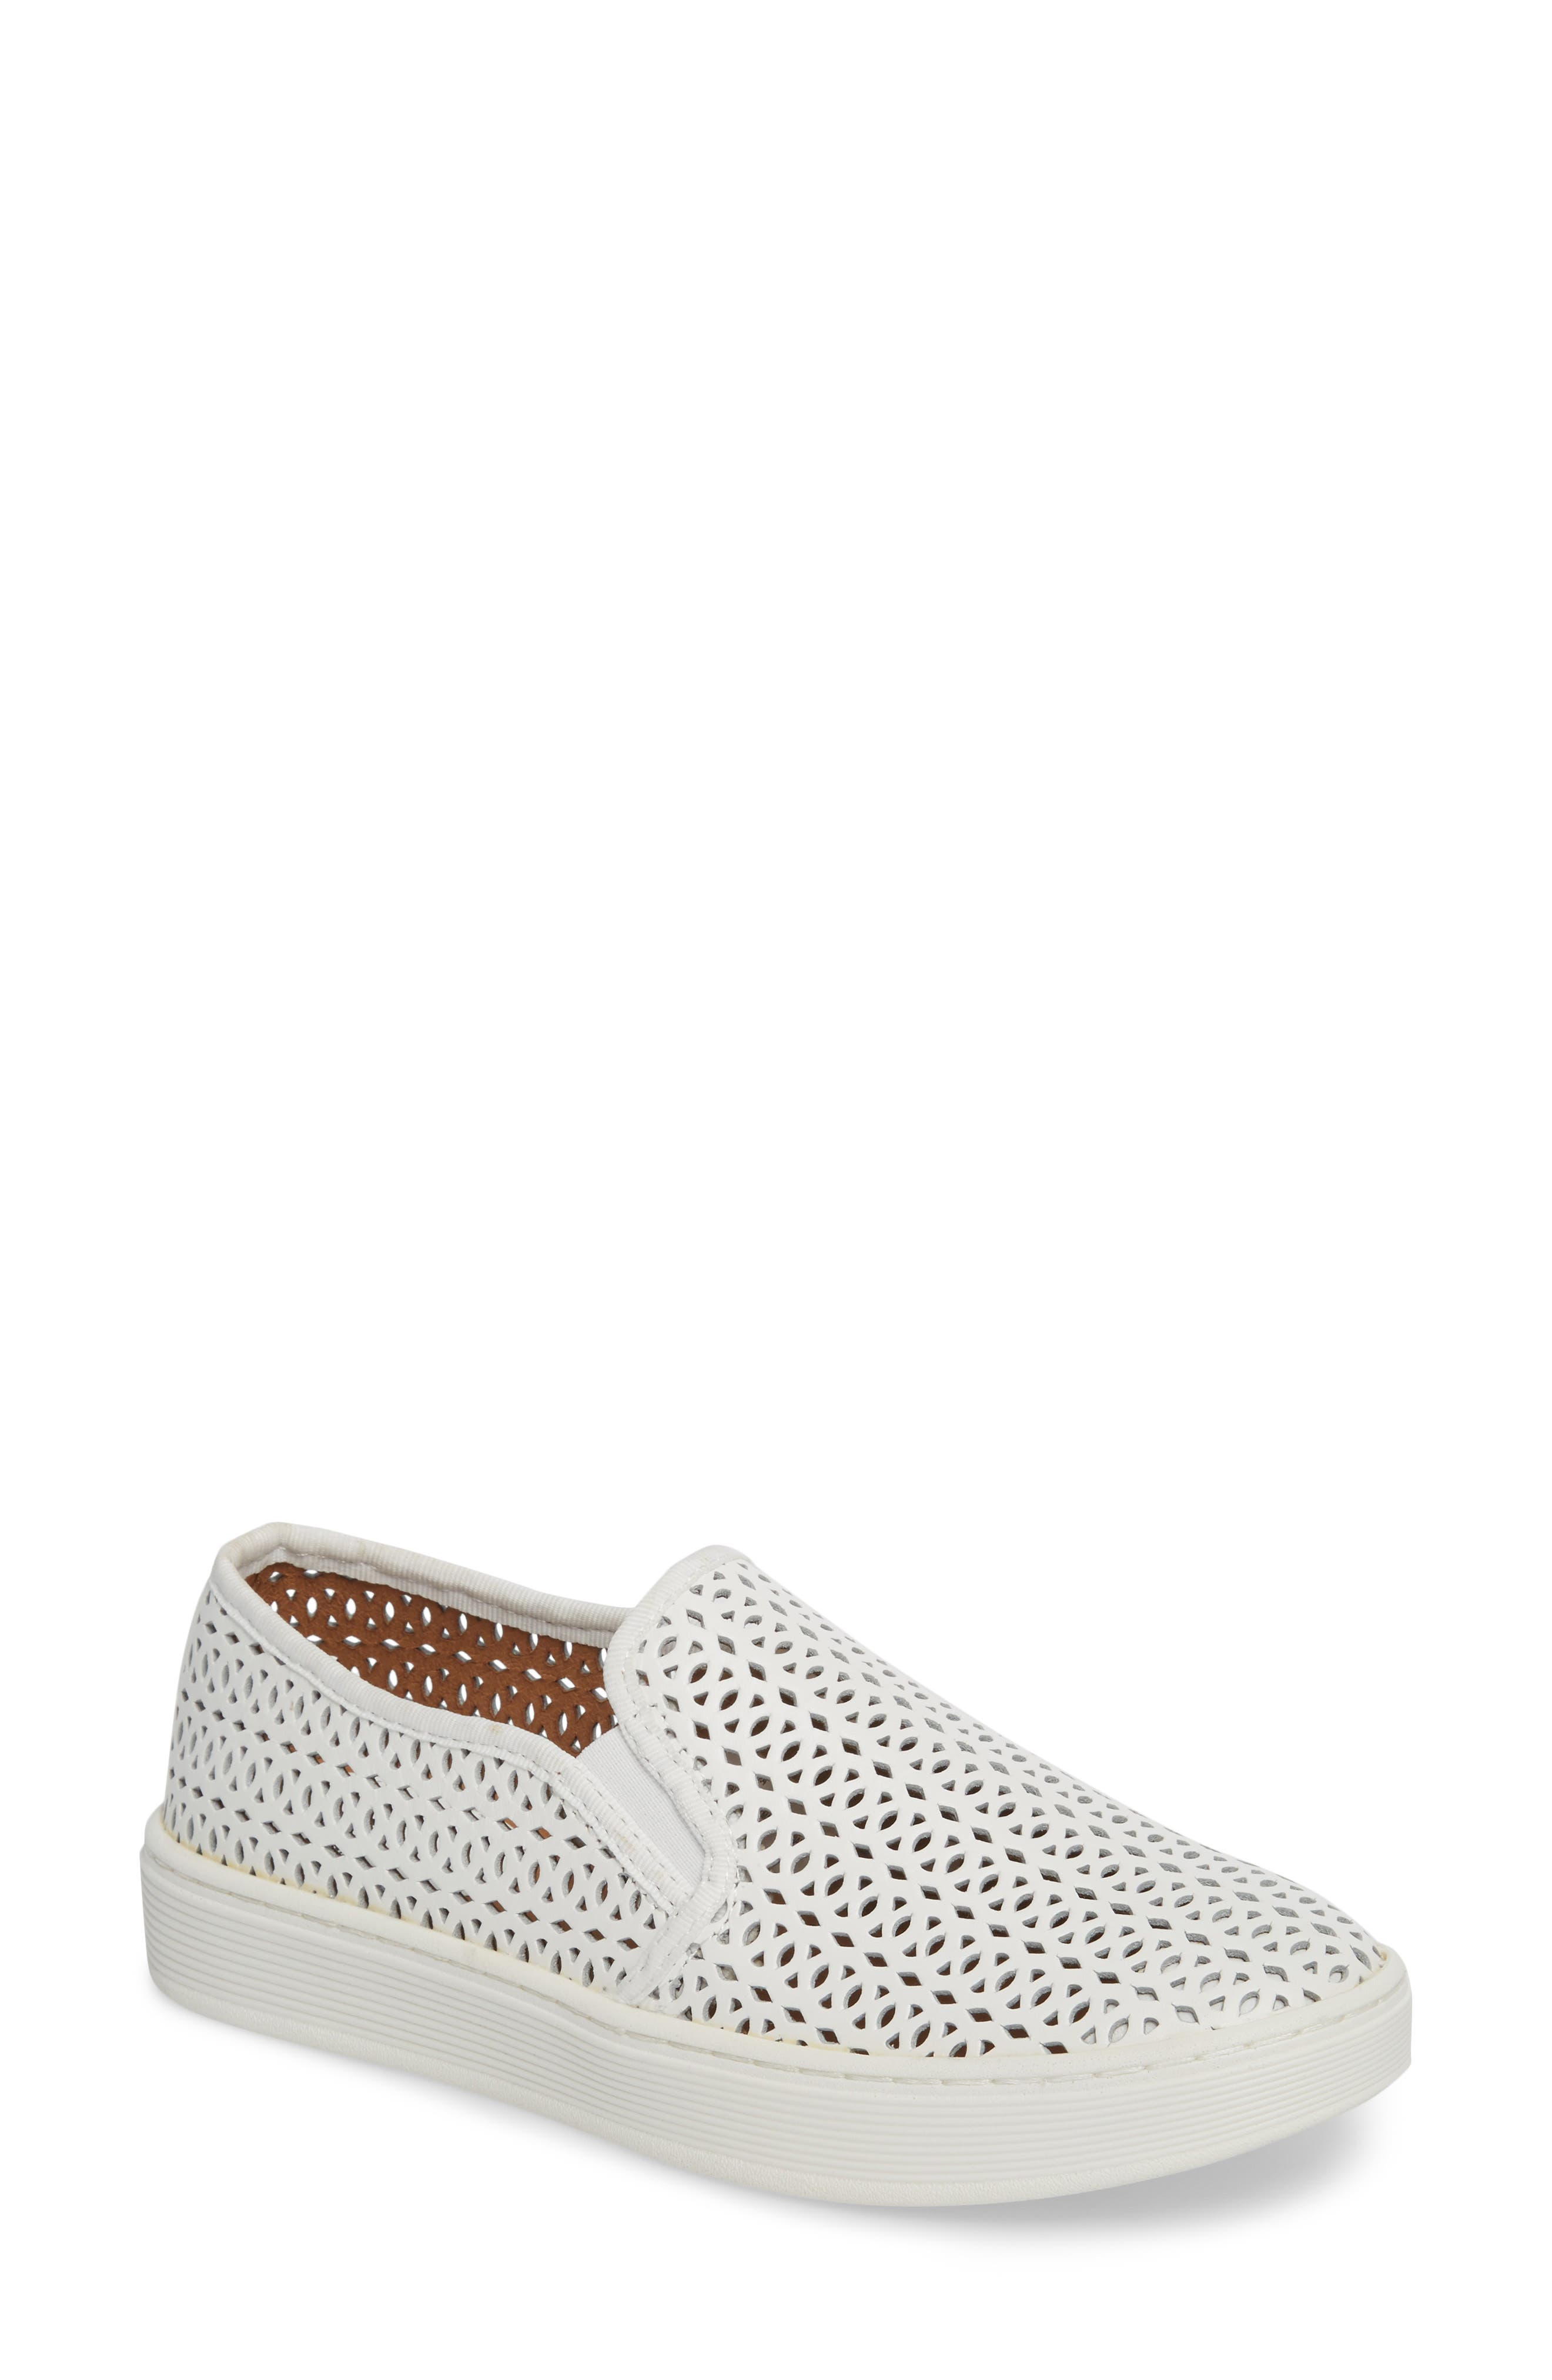 Somers II Slip-On Sneaker,                             Main thumbnail 1, color,                             WHITE LEATHER